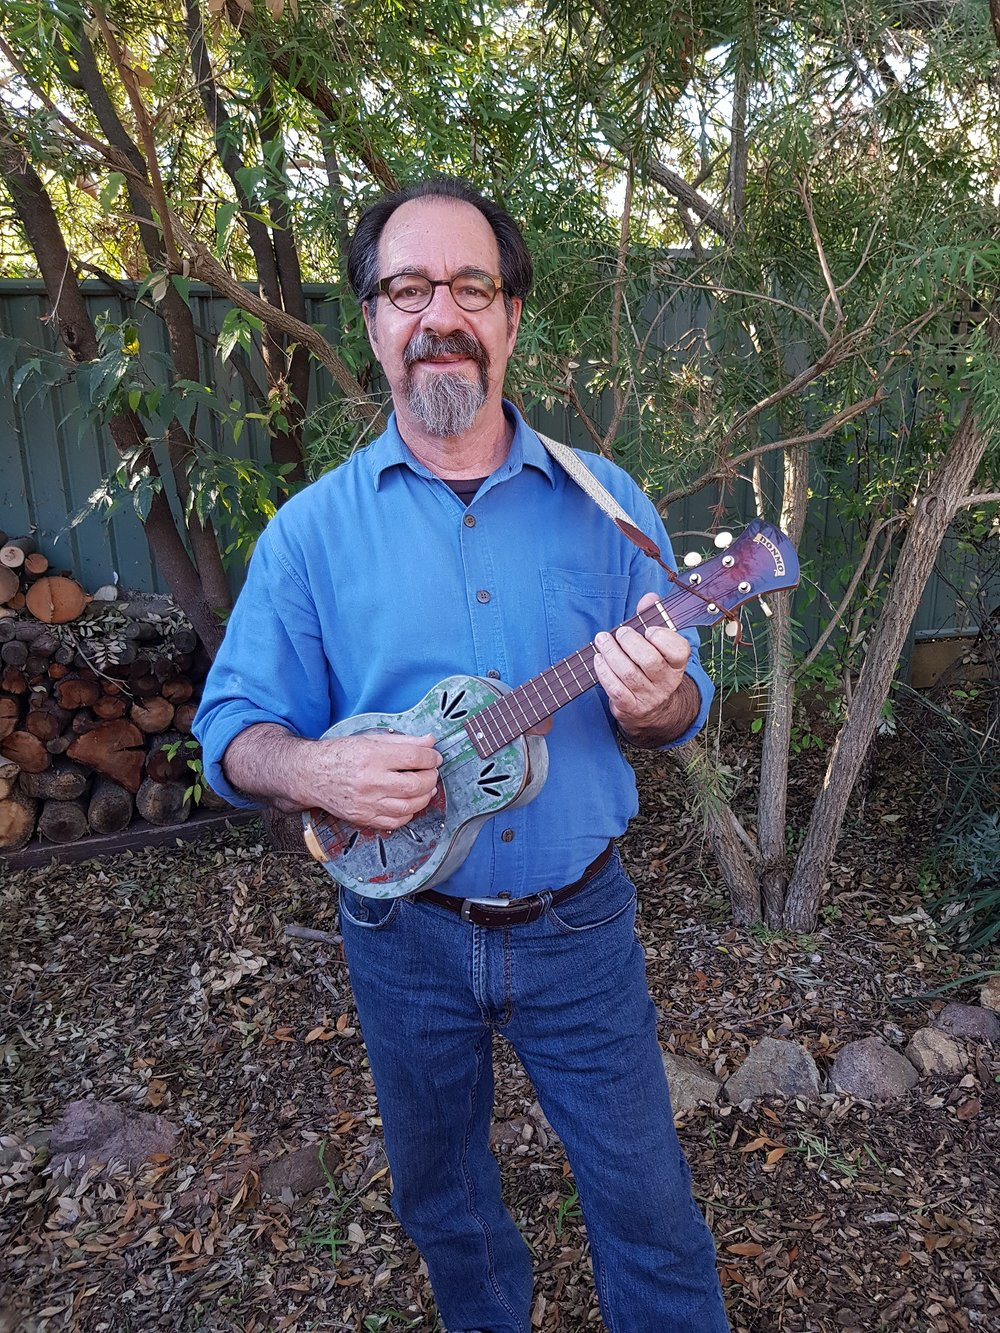 Michael Rosenberg with the resonator ukulele -